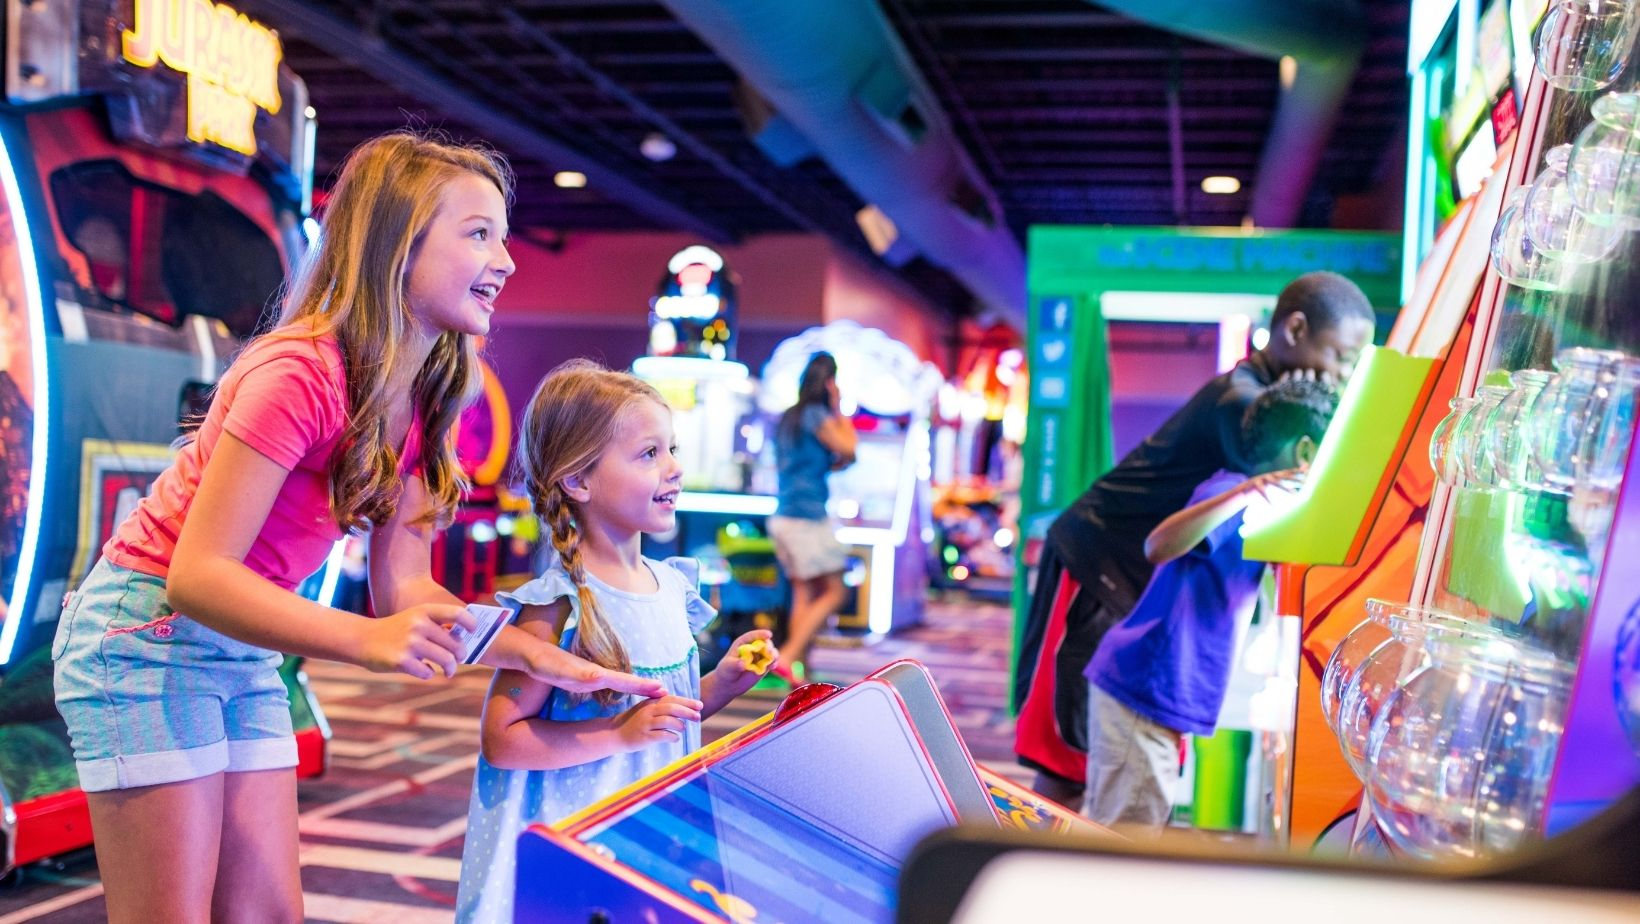 family fun at JB's Speed Zone Arcade | JB's on 41 is your family fun place | Milwaukee, WI